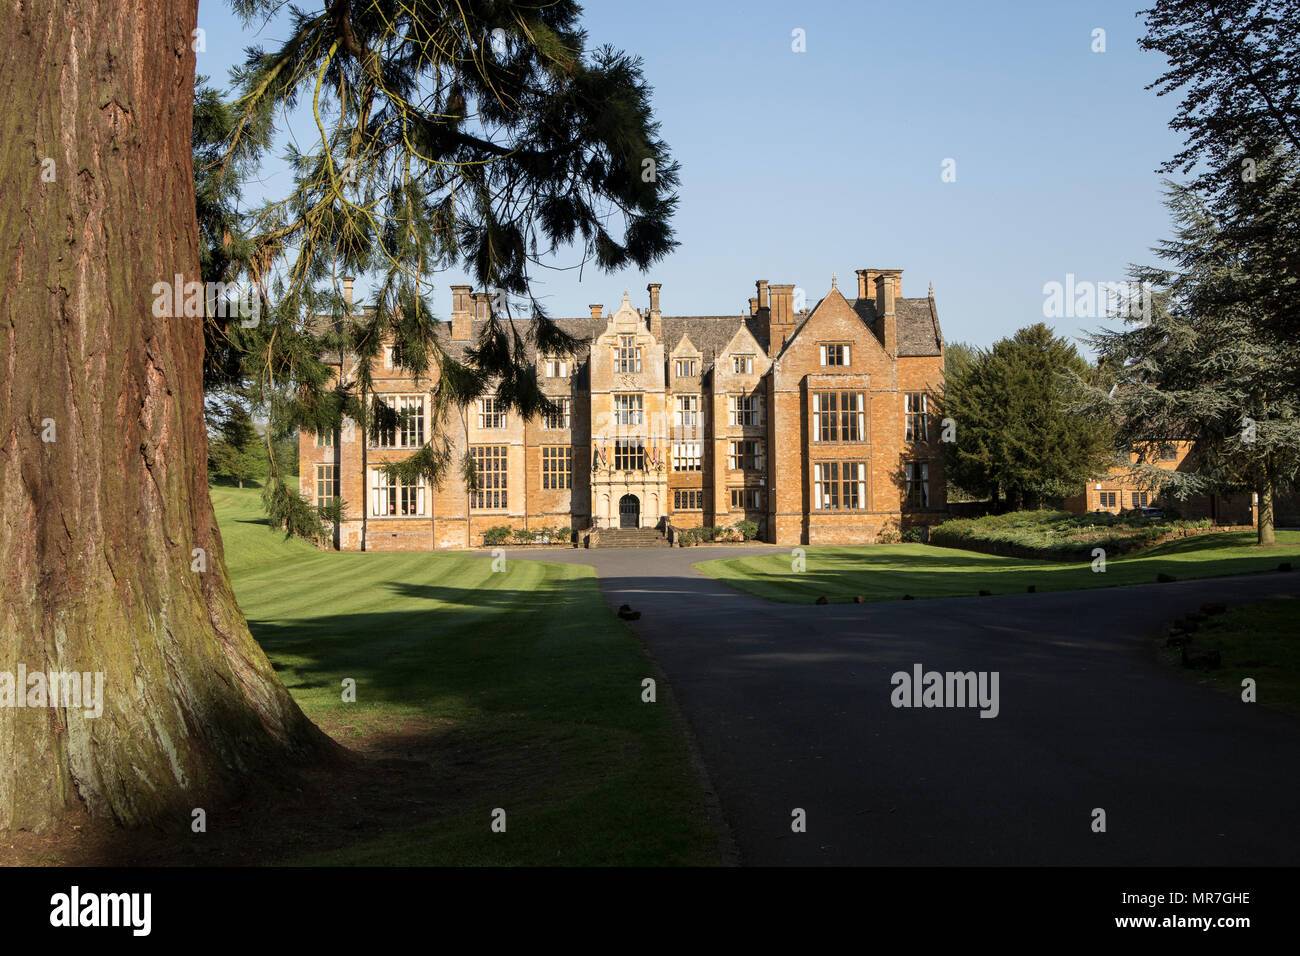 The main frontage at Fairleigh Dickinson University, formerly Wroxton College at Wroxton, near Banbury, Oxfordshire - Stock Image